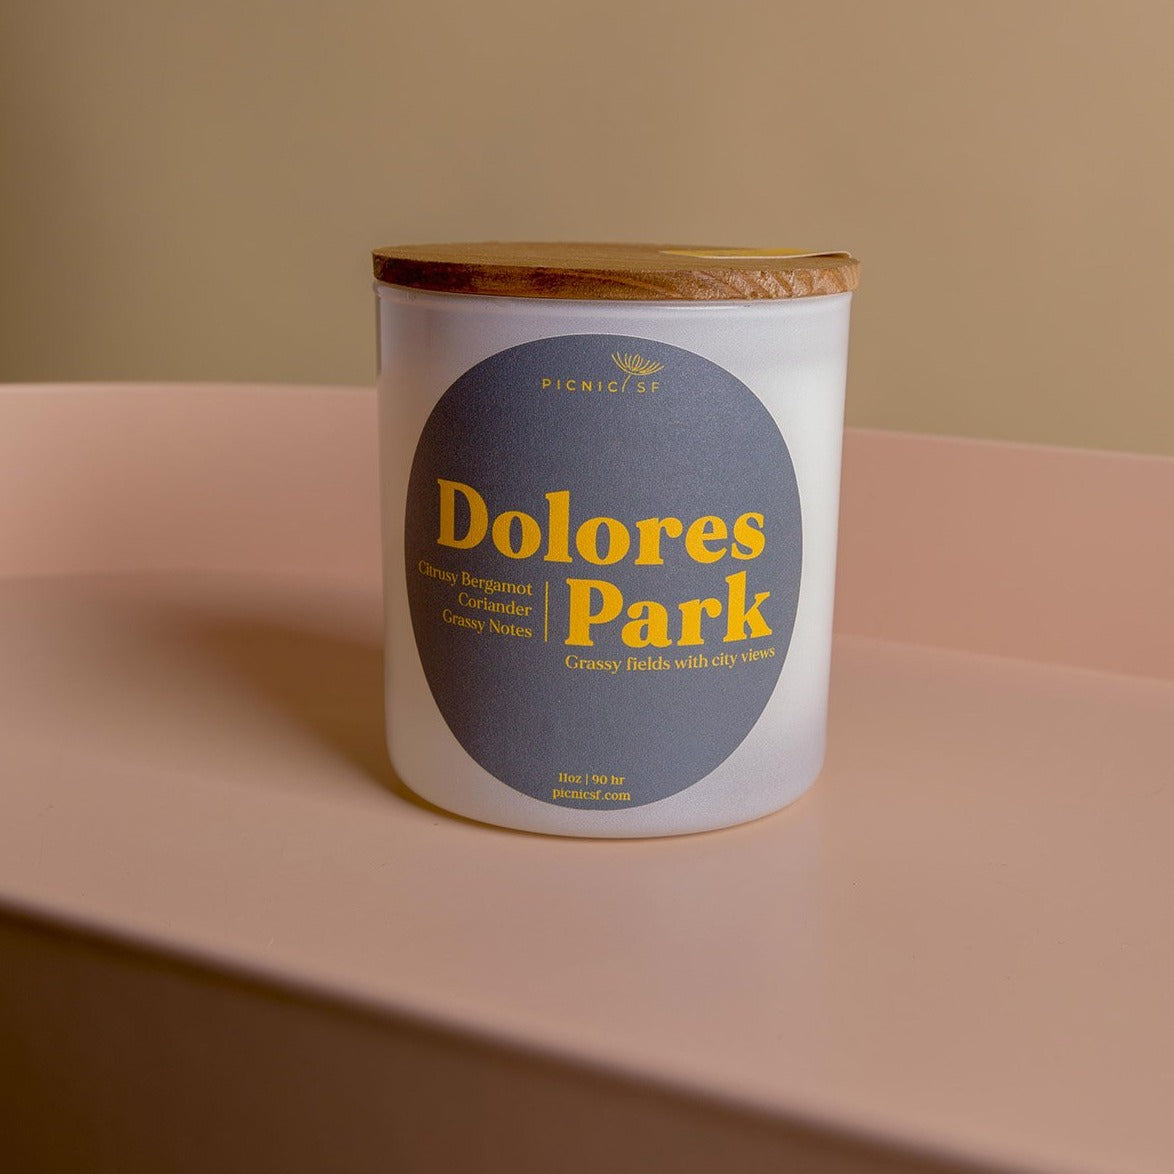 Dolores Park candle is a Picnic exclusive San Francisco candle available at Picnic SF.